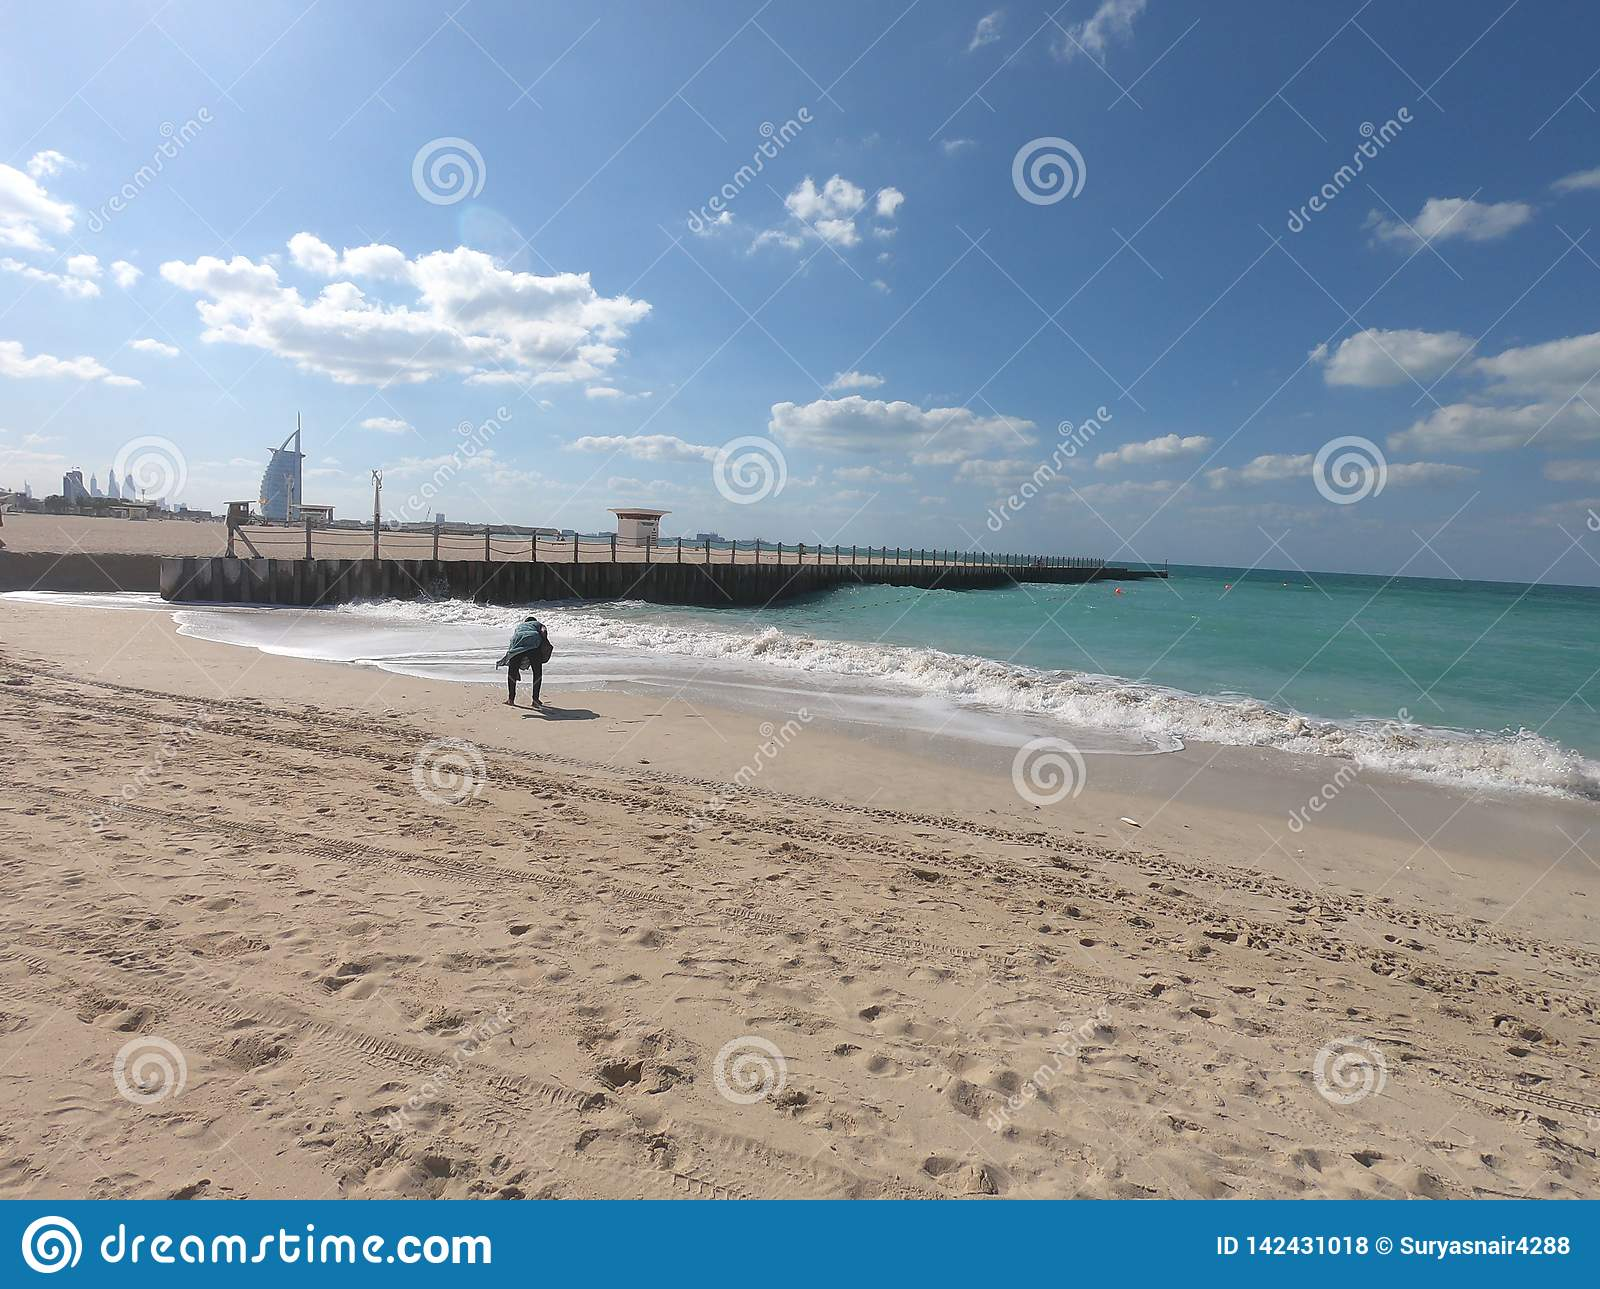 Panoramic View of Jumeirah Beach and Burj Al Arab and View of Pier. Woman picking up Shells at beach